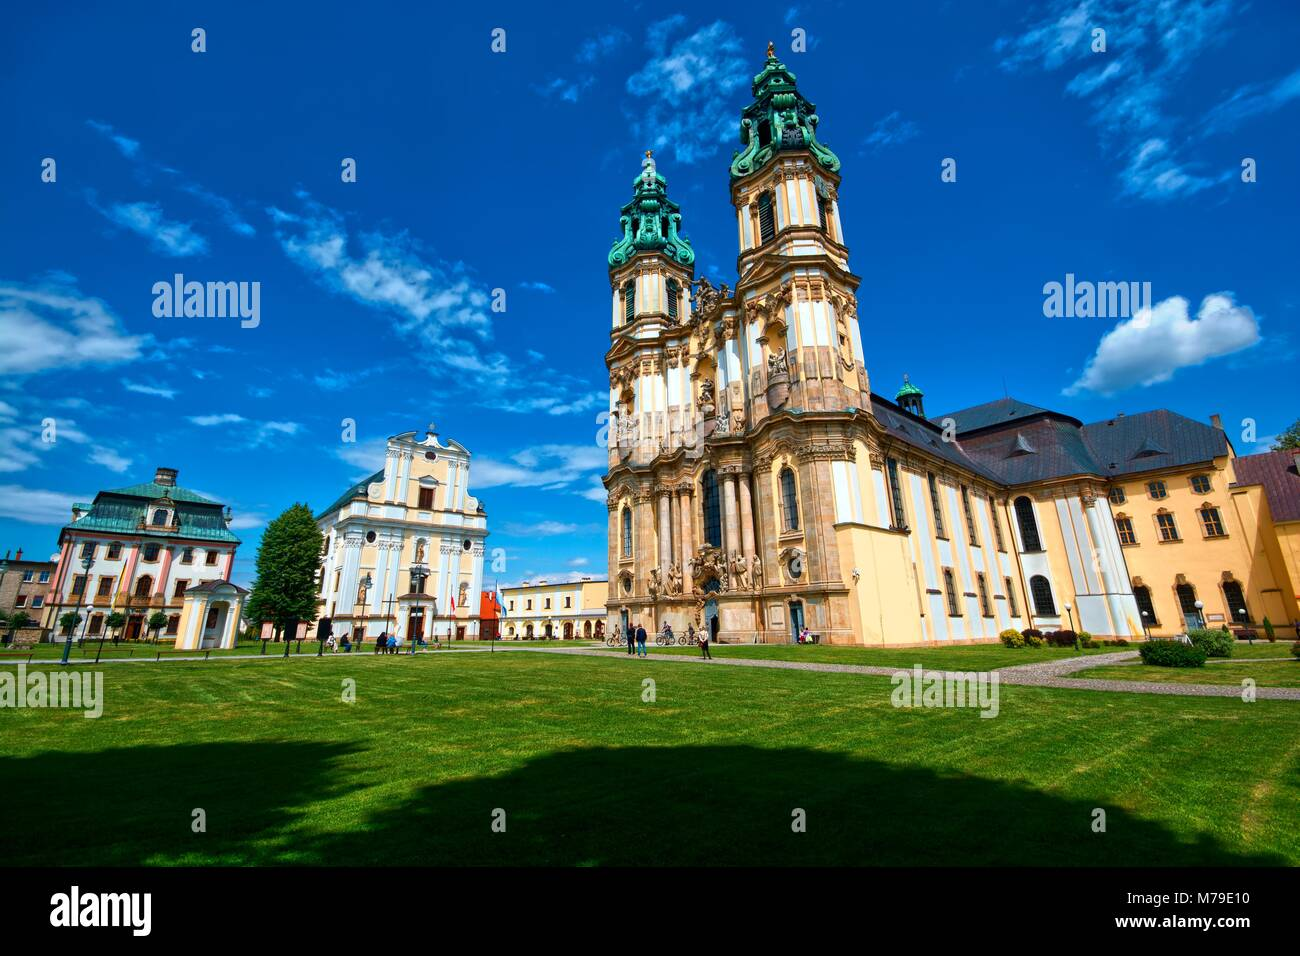 Baroque style Basilica of the Assumption of the Blessed Virgin Mary in Krzeszow, Poland. The church is a part of Stock Photo